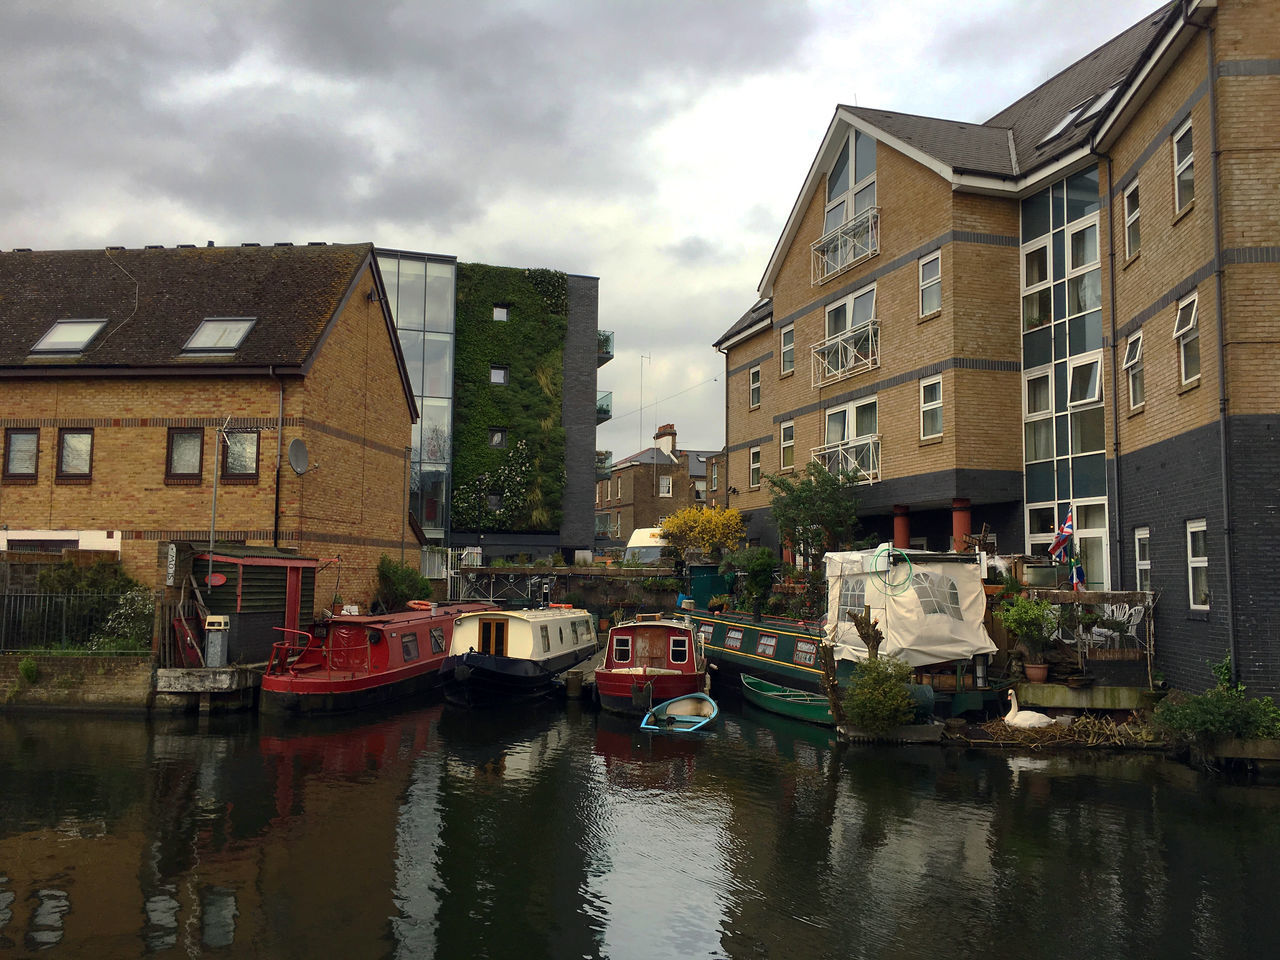 Contemporary London housing Cloudy Houseboat Houseboats Ladbroke Grove London Canals Paddington Branch Residential Building